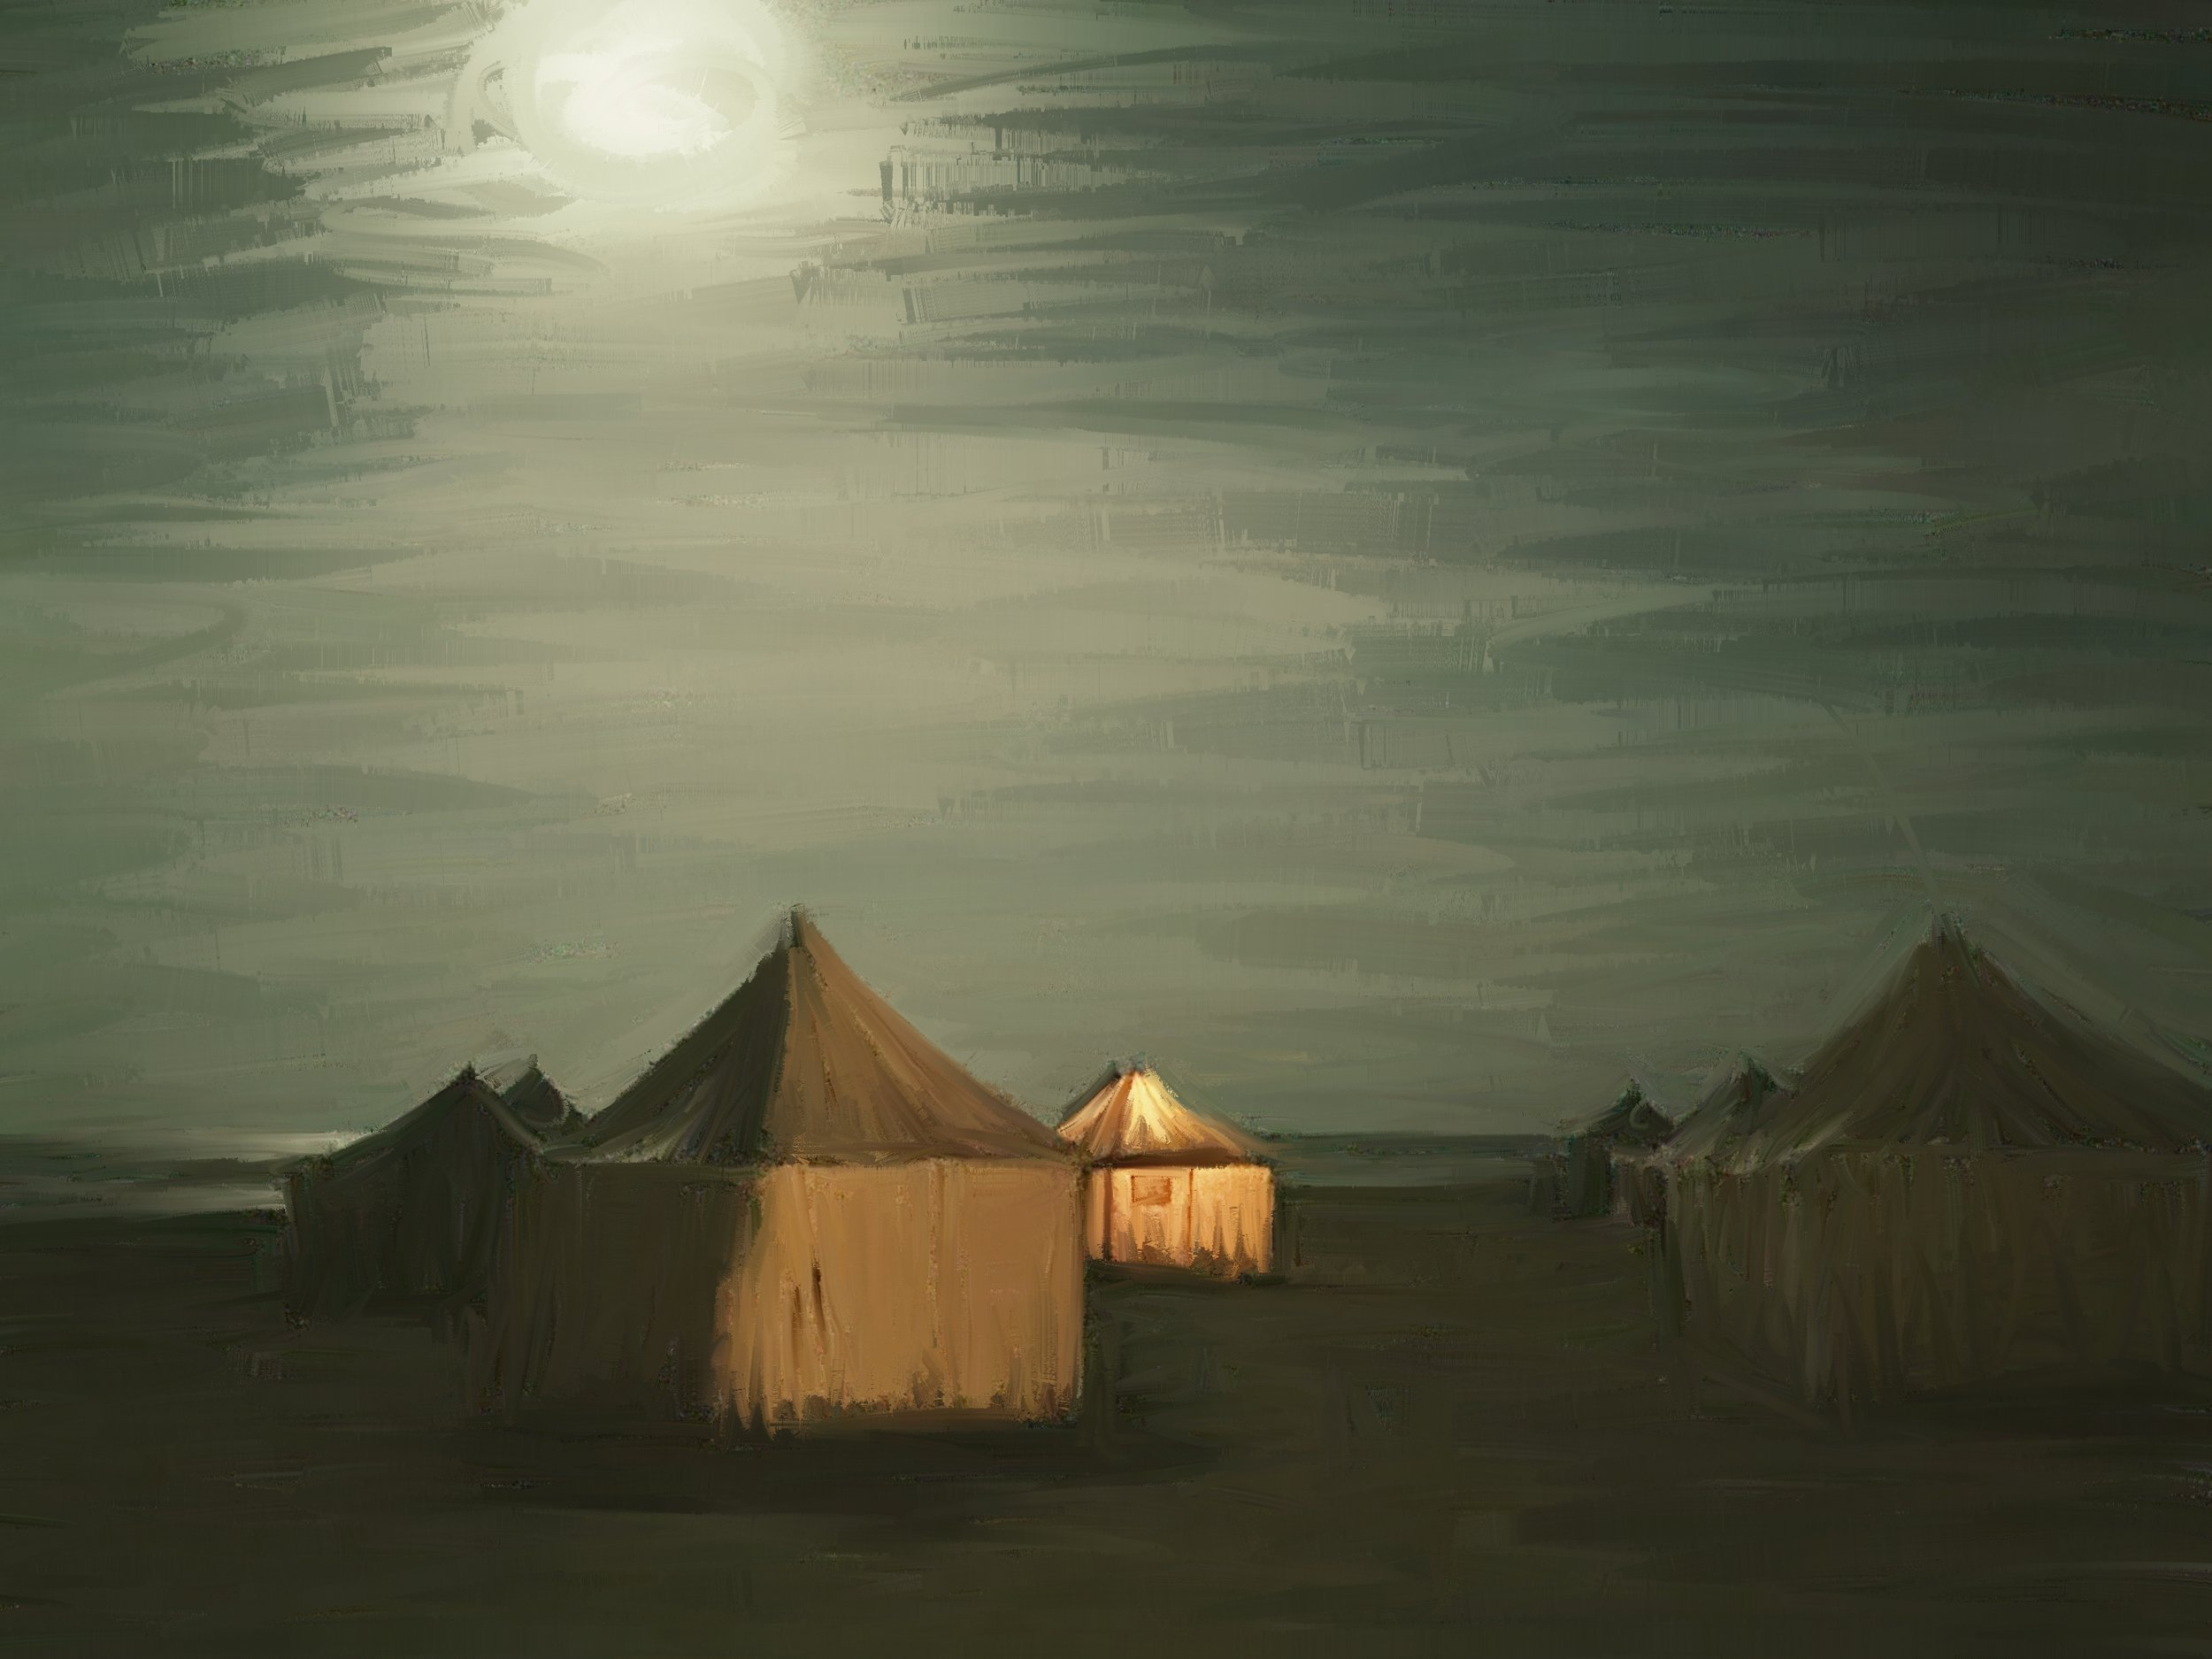 Moonlight Tents 2